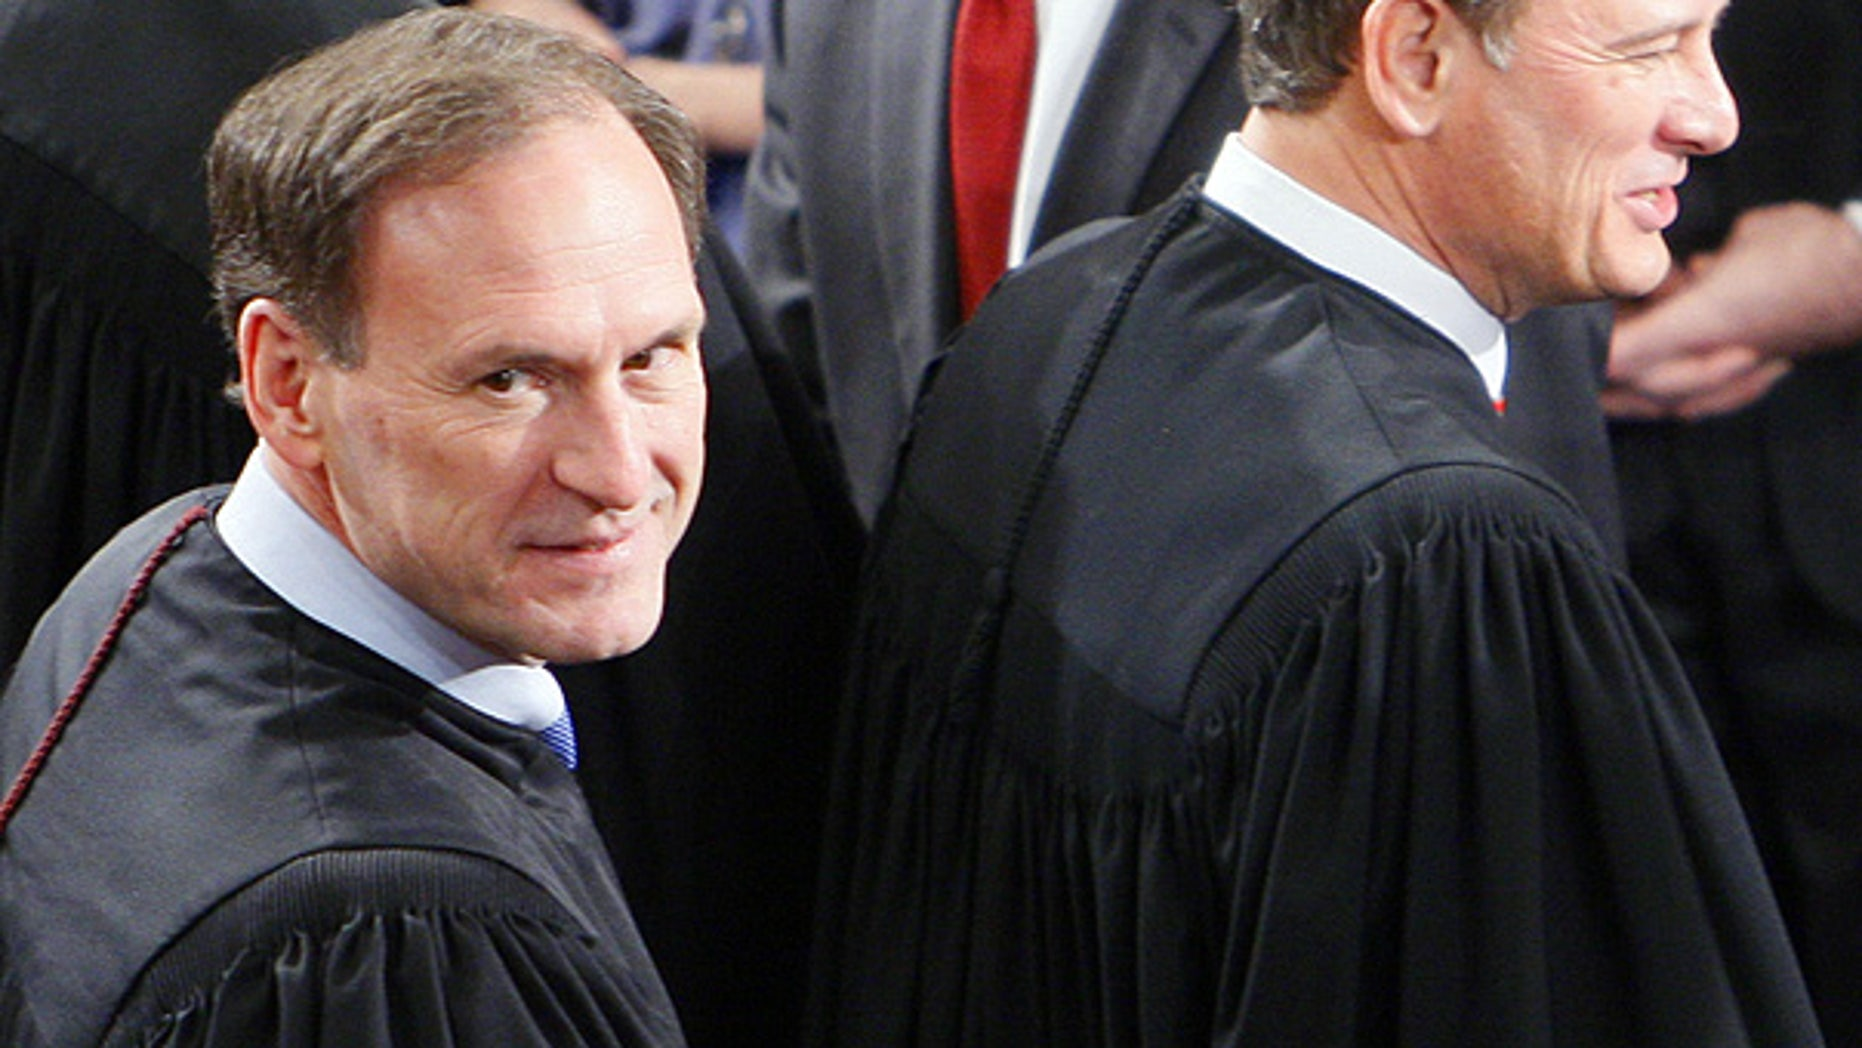 Jan. 27, 2010: Supreme Court Justice Samuel Alito, left, and Chief Justice John Roberts arrive for the State of the Union address.